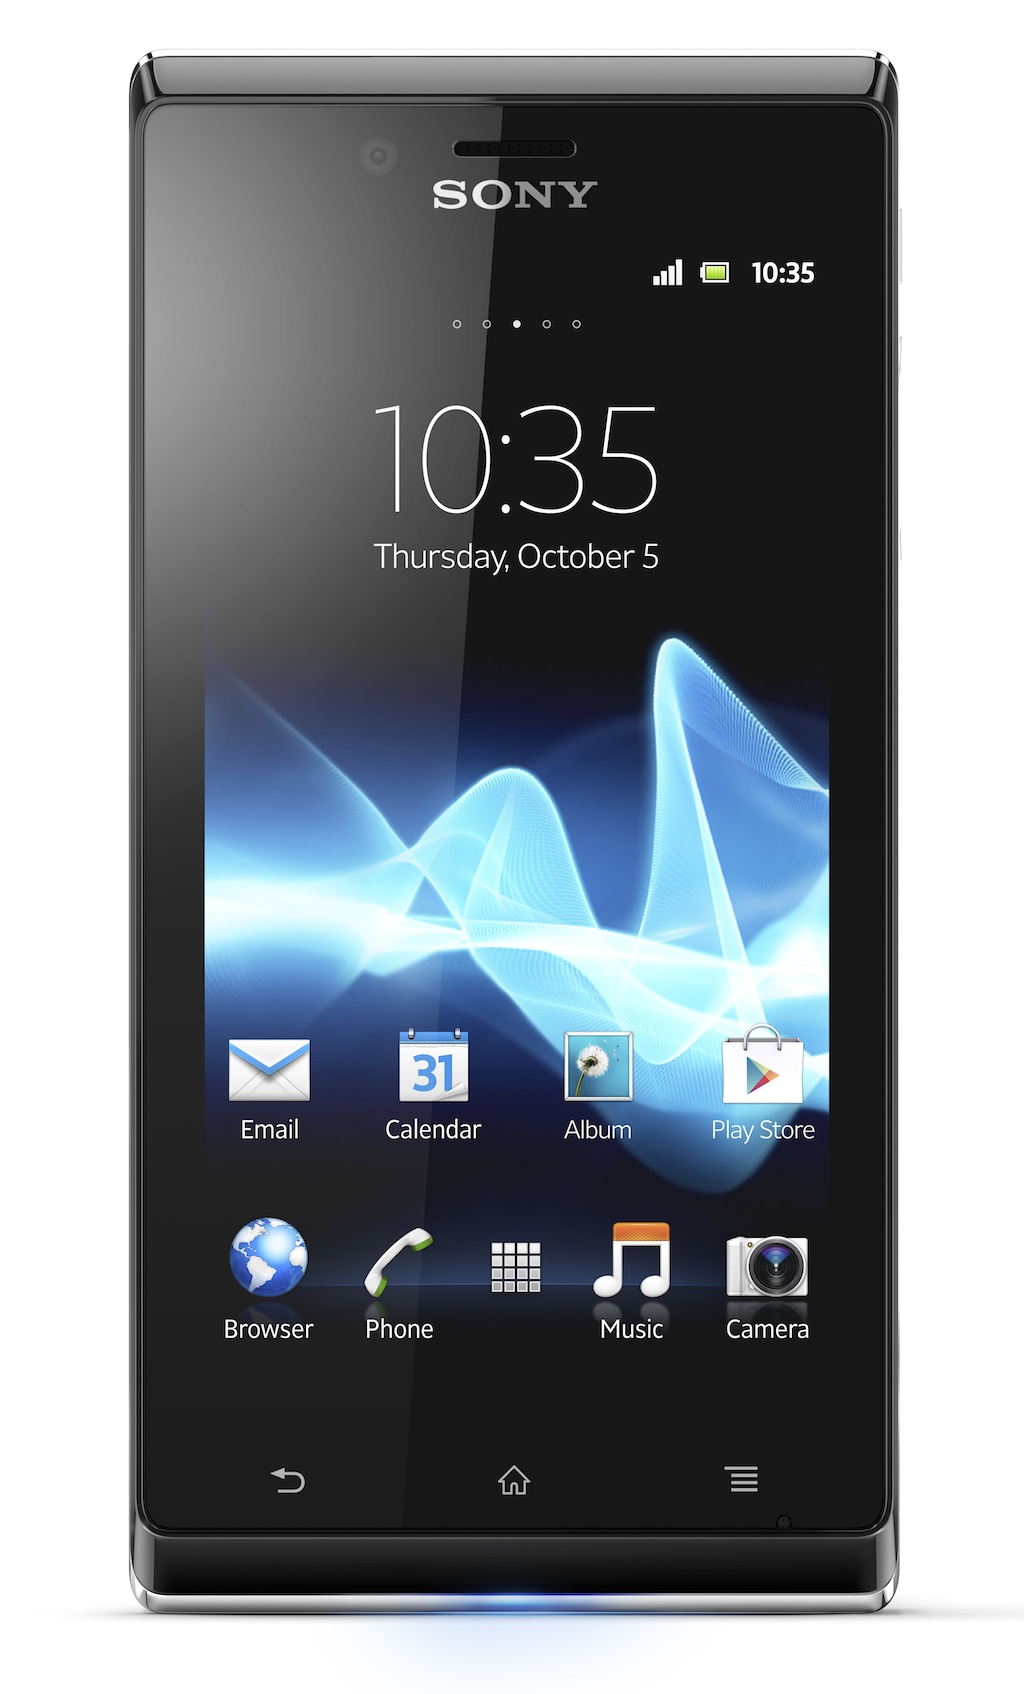 "The Xperia J measures 4.89"" x 0.36"" x 2.41"" and weighs 0.27 pounds."